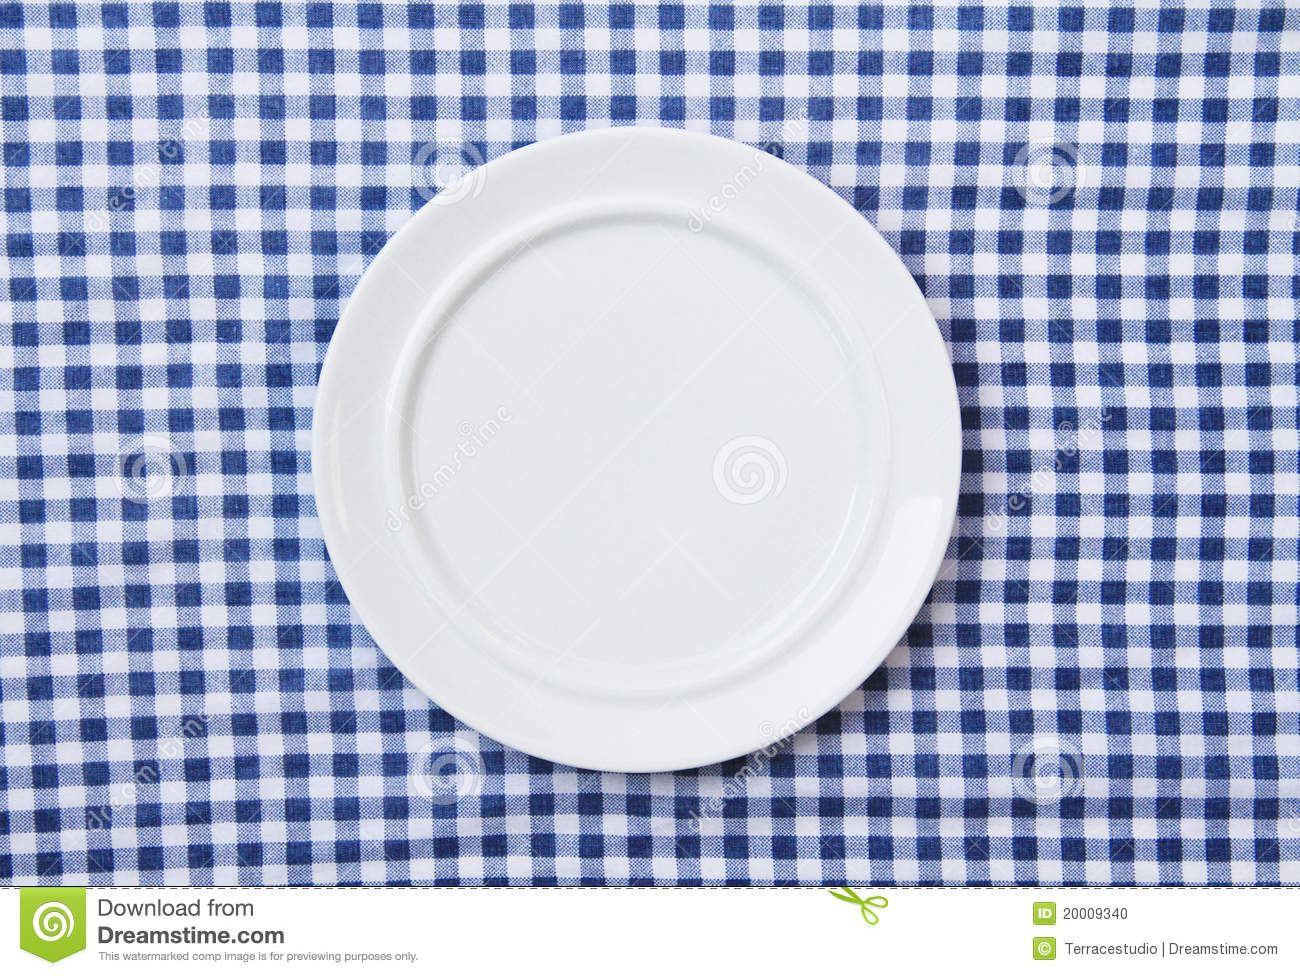 White Plate On Blue And White Checkered Fabric Stock Photo - Image ...